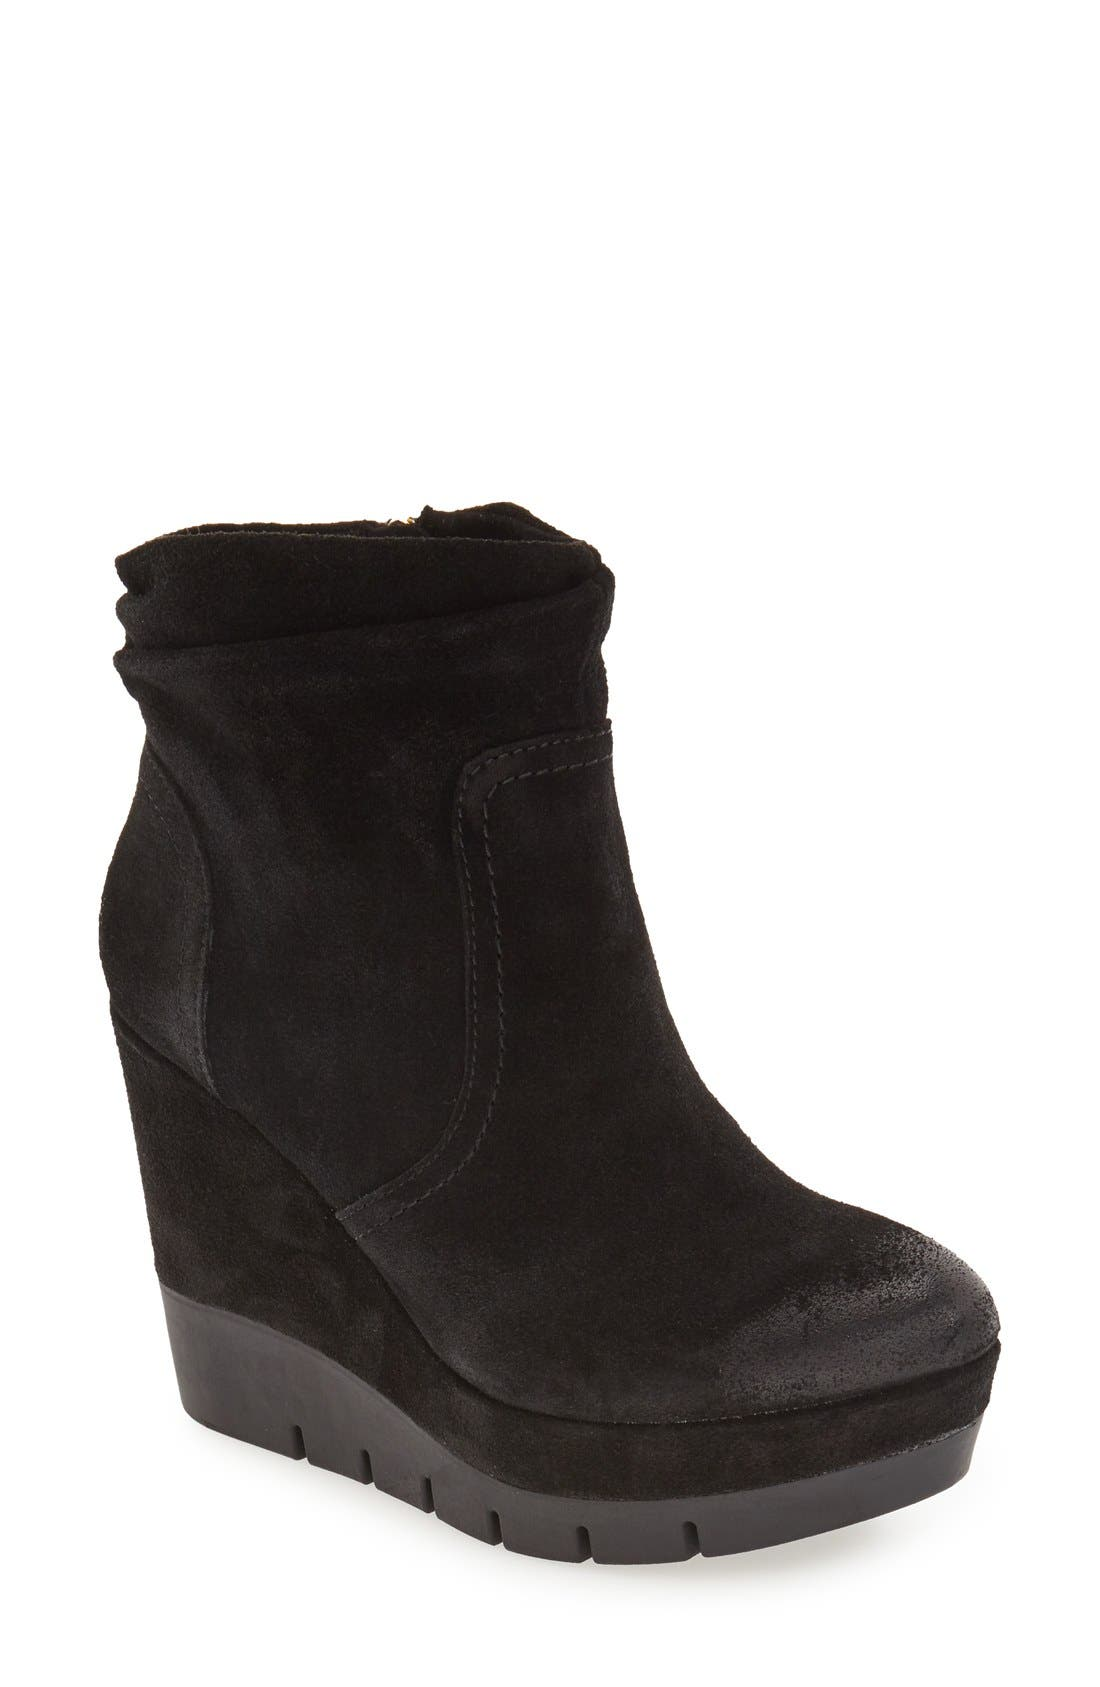 Main Image - Isolá Jadyn Wedge Bootie (Women)